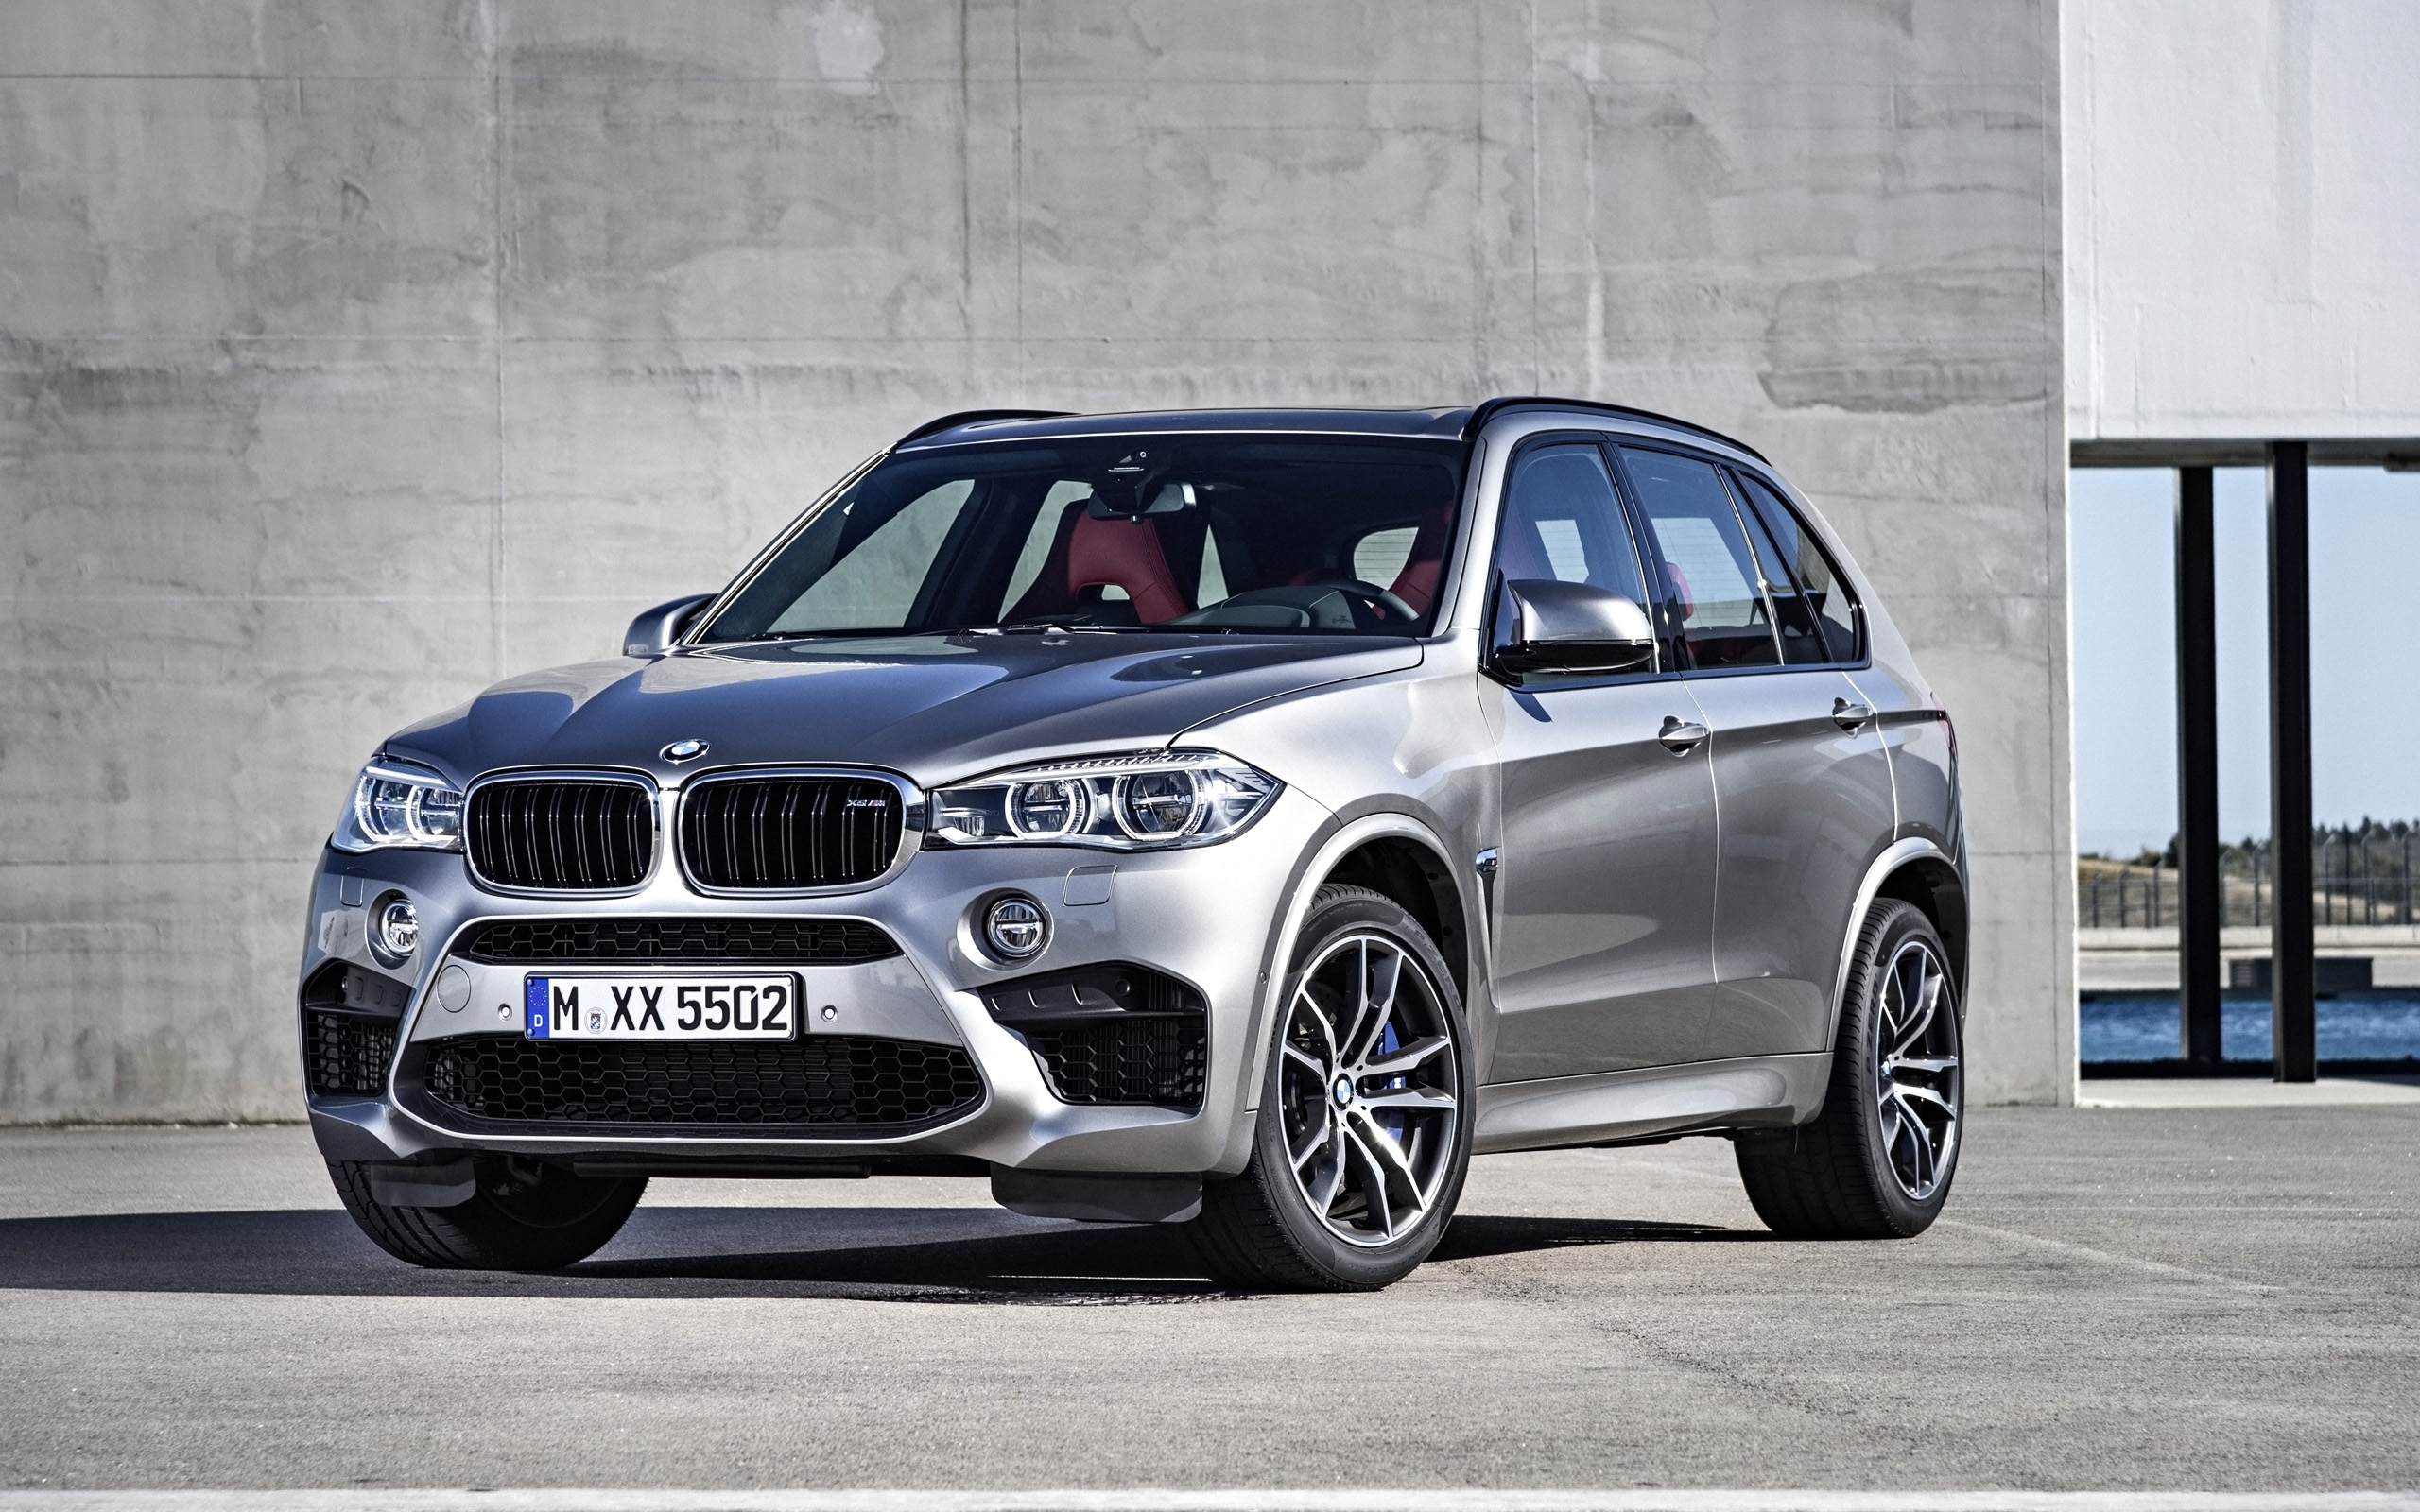 2015 bmw x5 m wallpaper hd car wallpapers id 4929. Black Bedroom Furniture Sets. Home Design Ideas